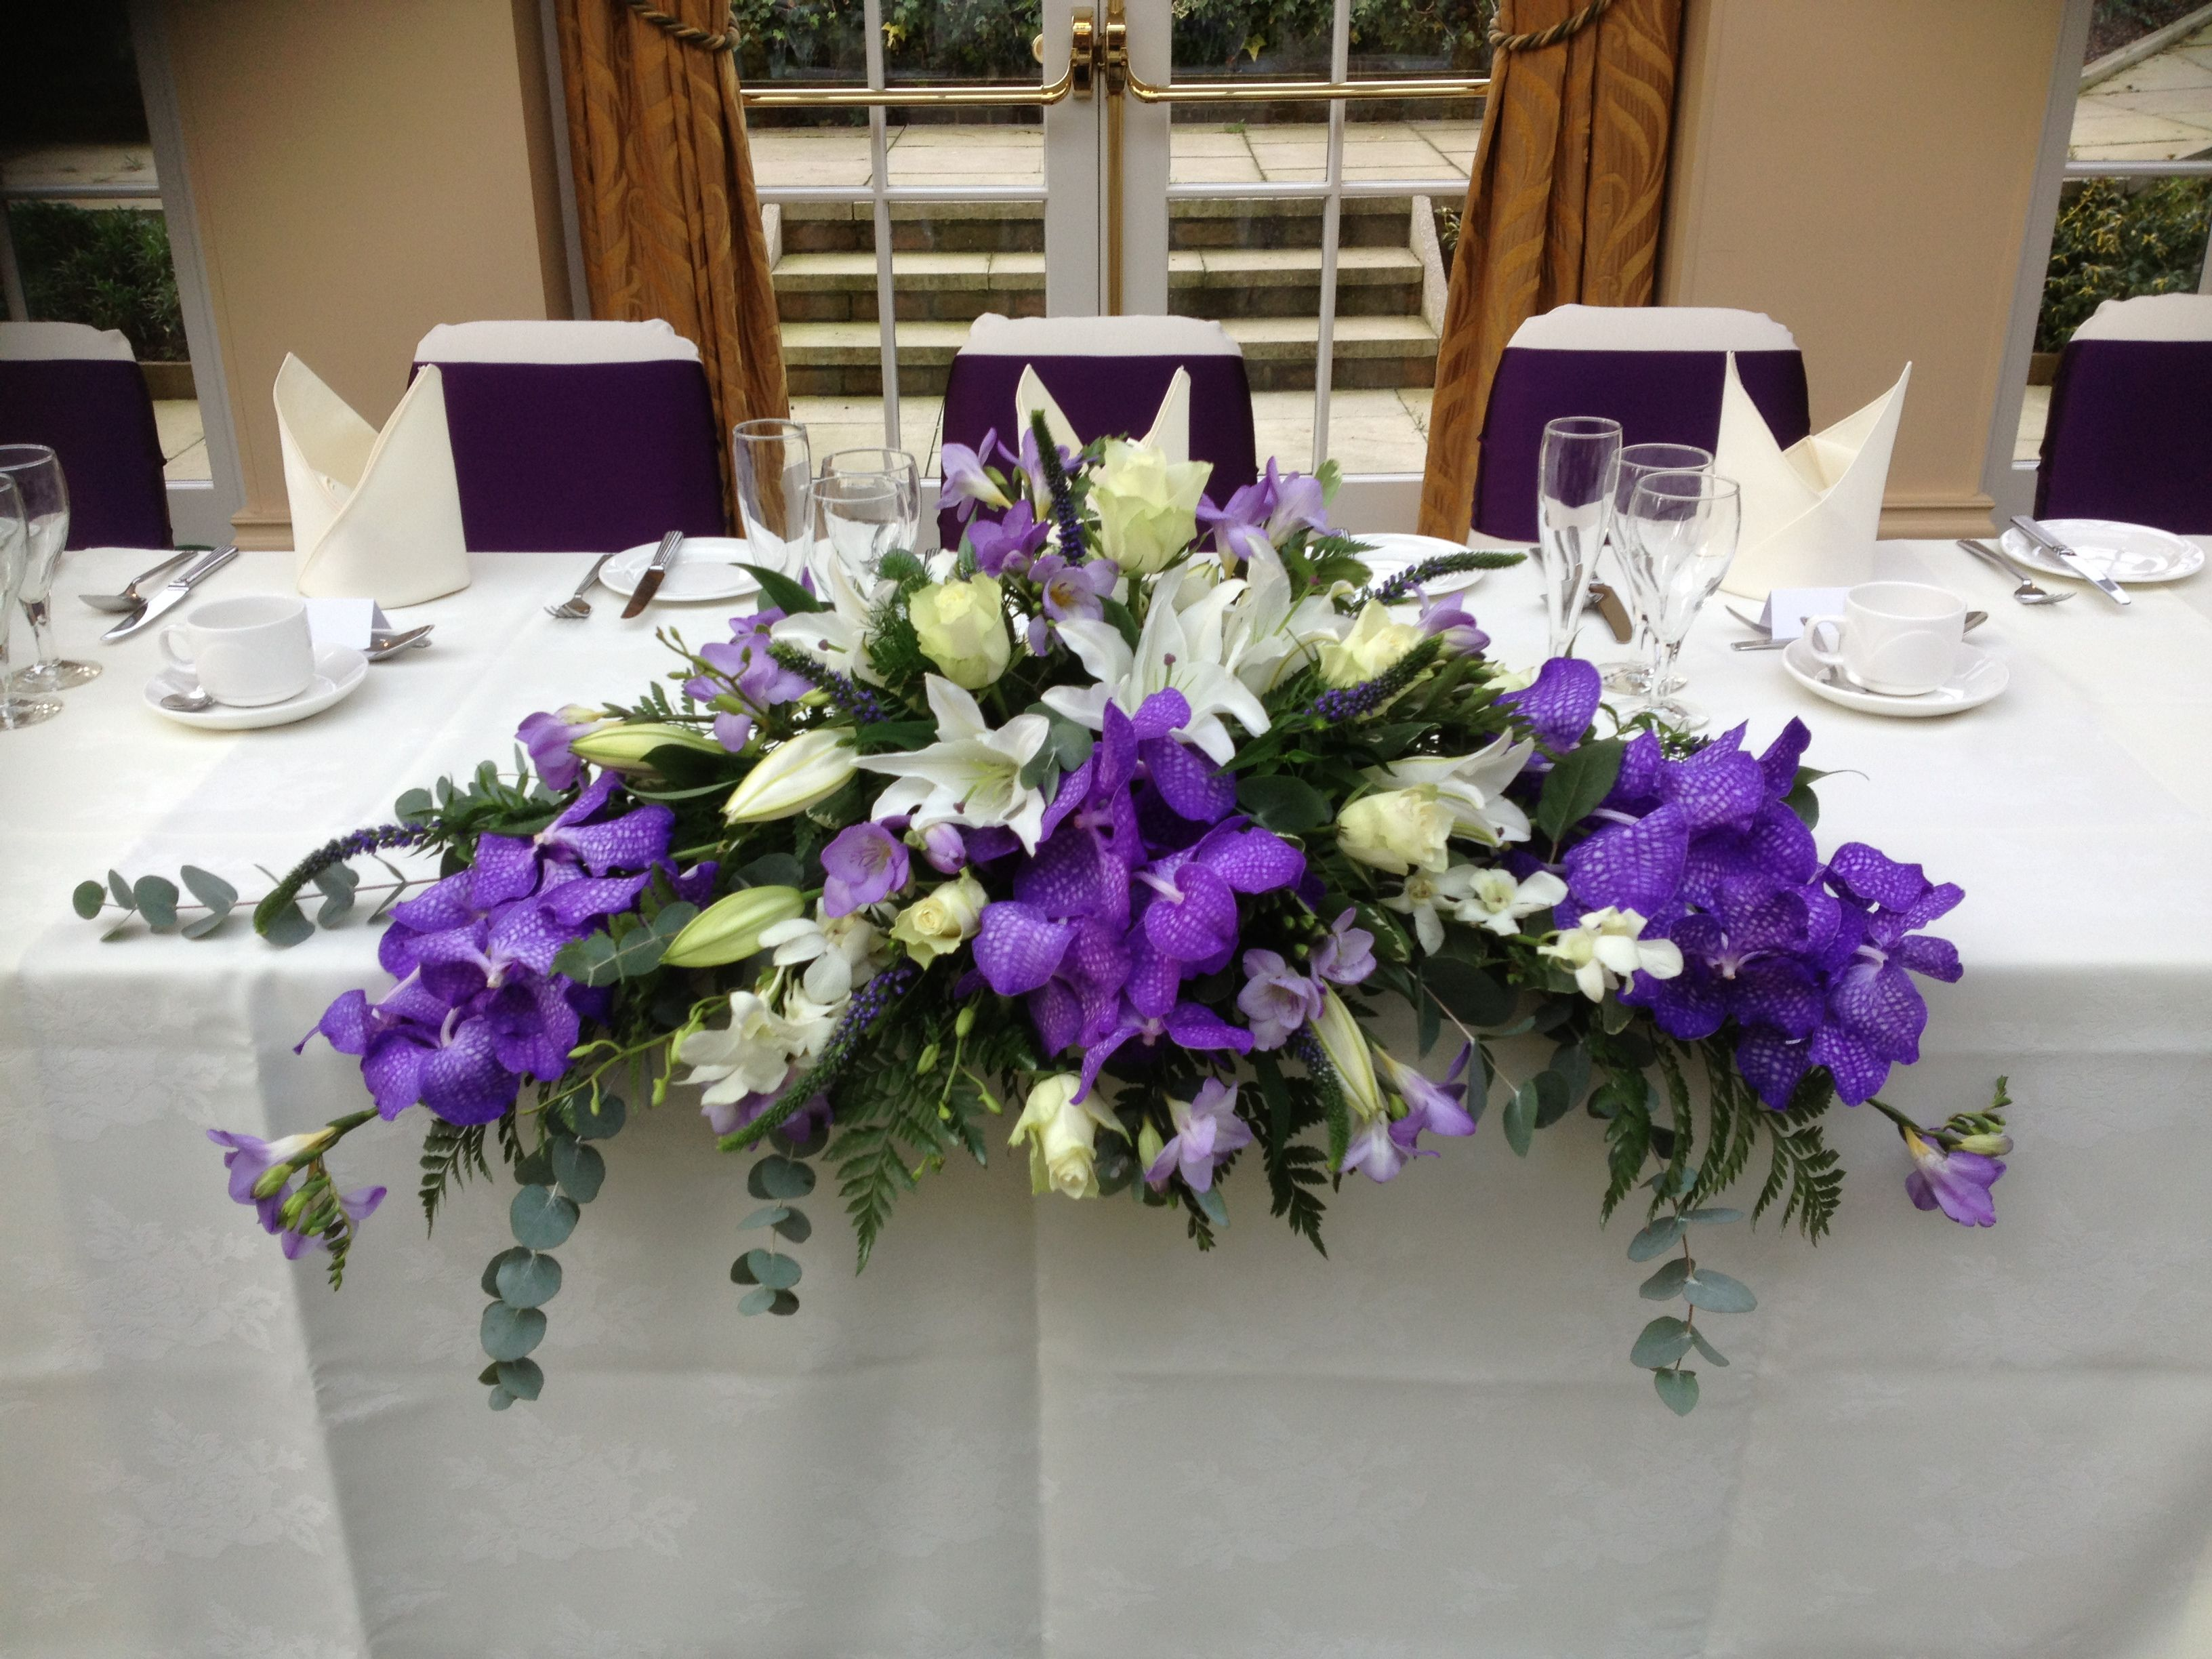 Beautiful Top Table Design With Vanda Orchids White Lilies And Lilac Freesia Top Table Flowers Wedding Table Flowers Wedding Top Table